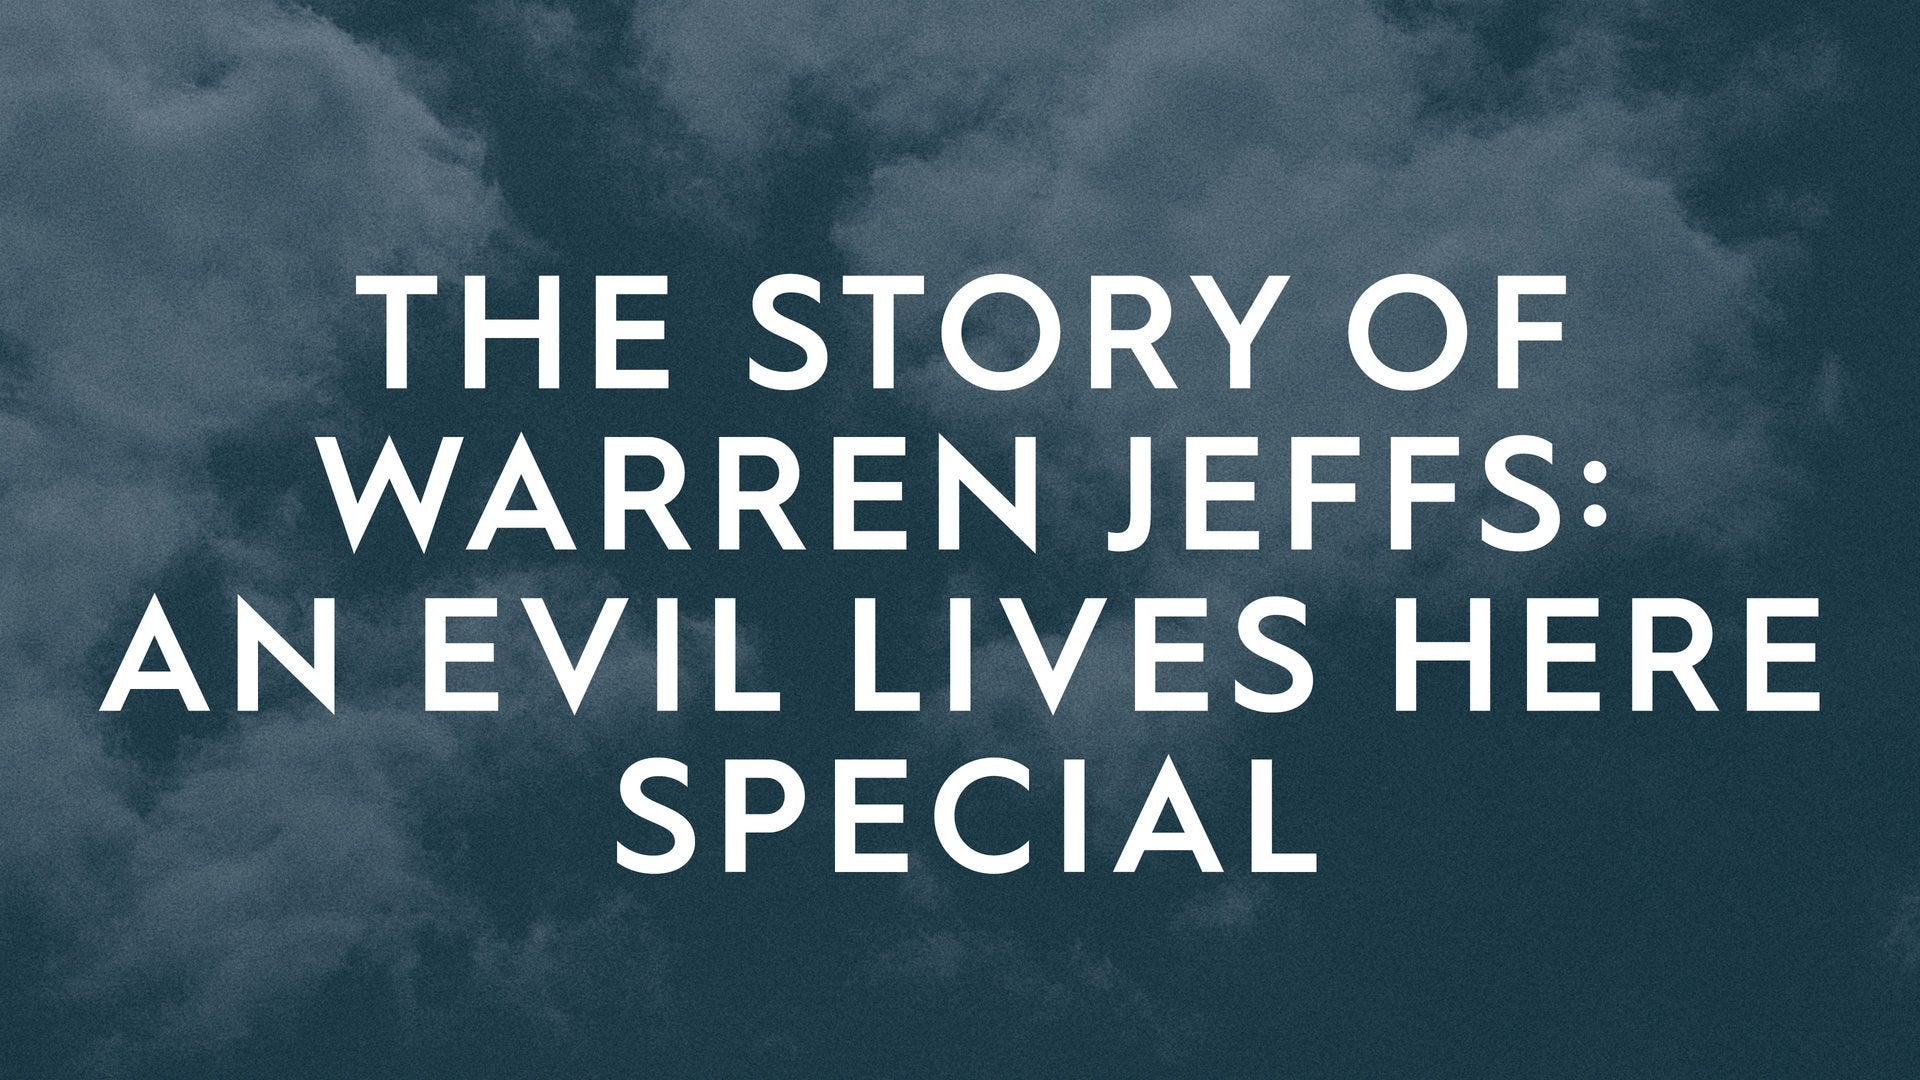 The Story of Warren Jeffs: An Evil Lives Here Special